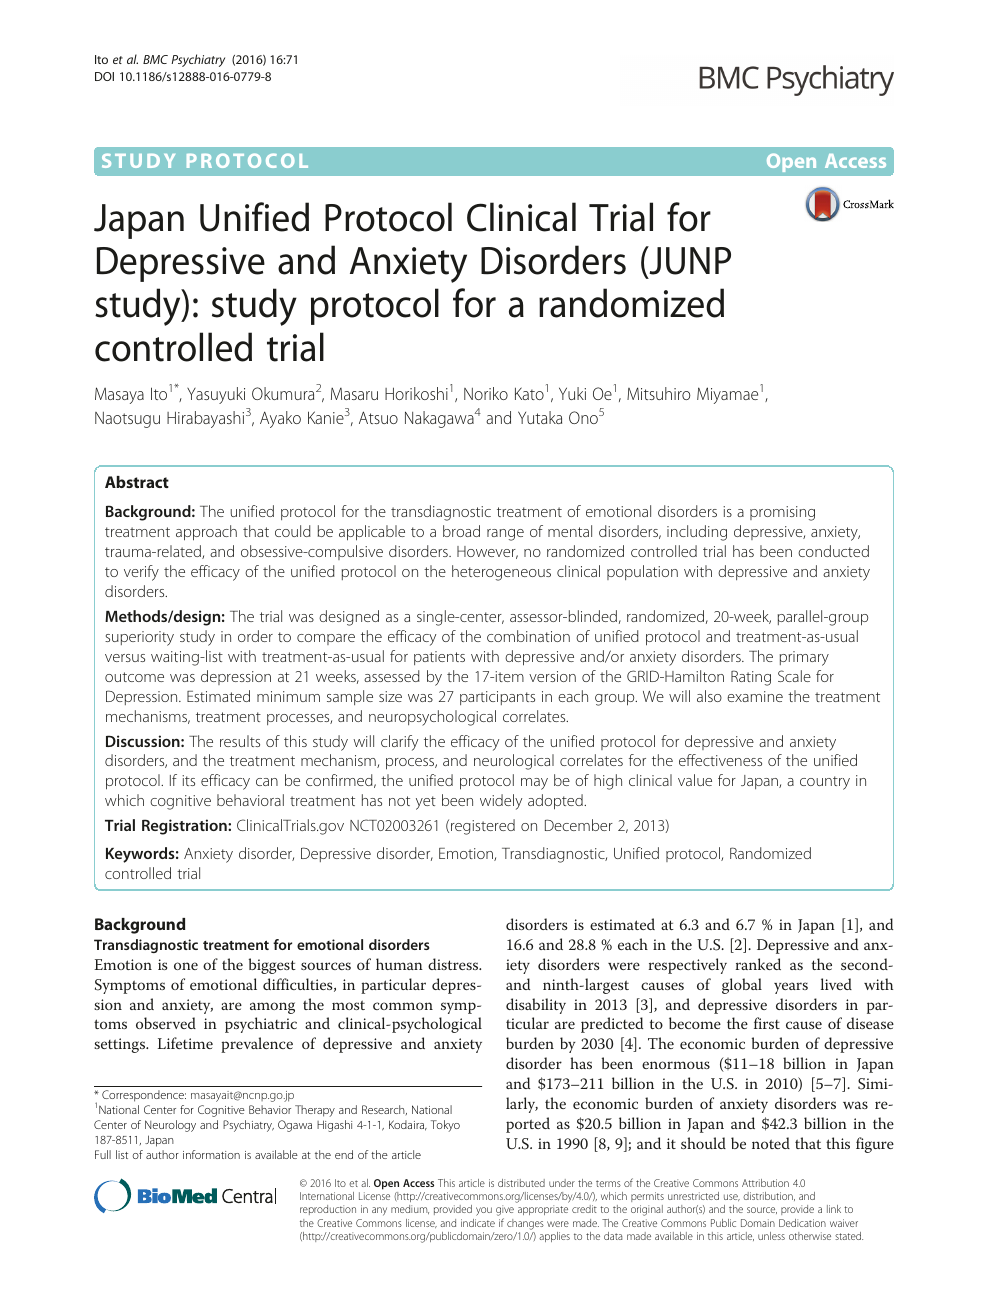 Japan Unified Protocol Clinical Trial for Depressive and